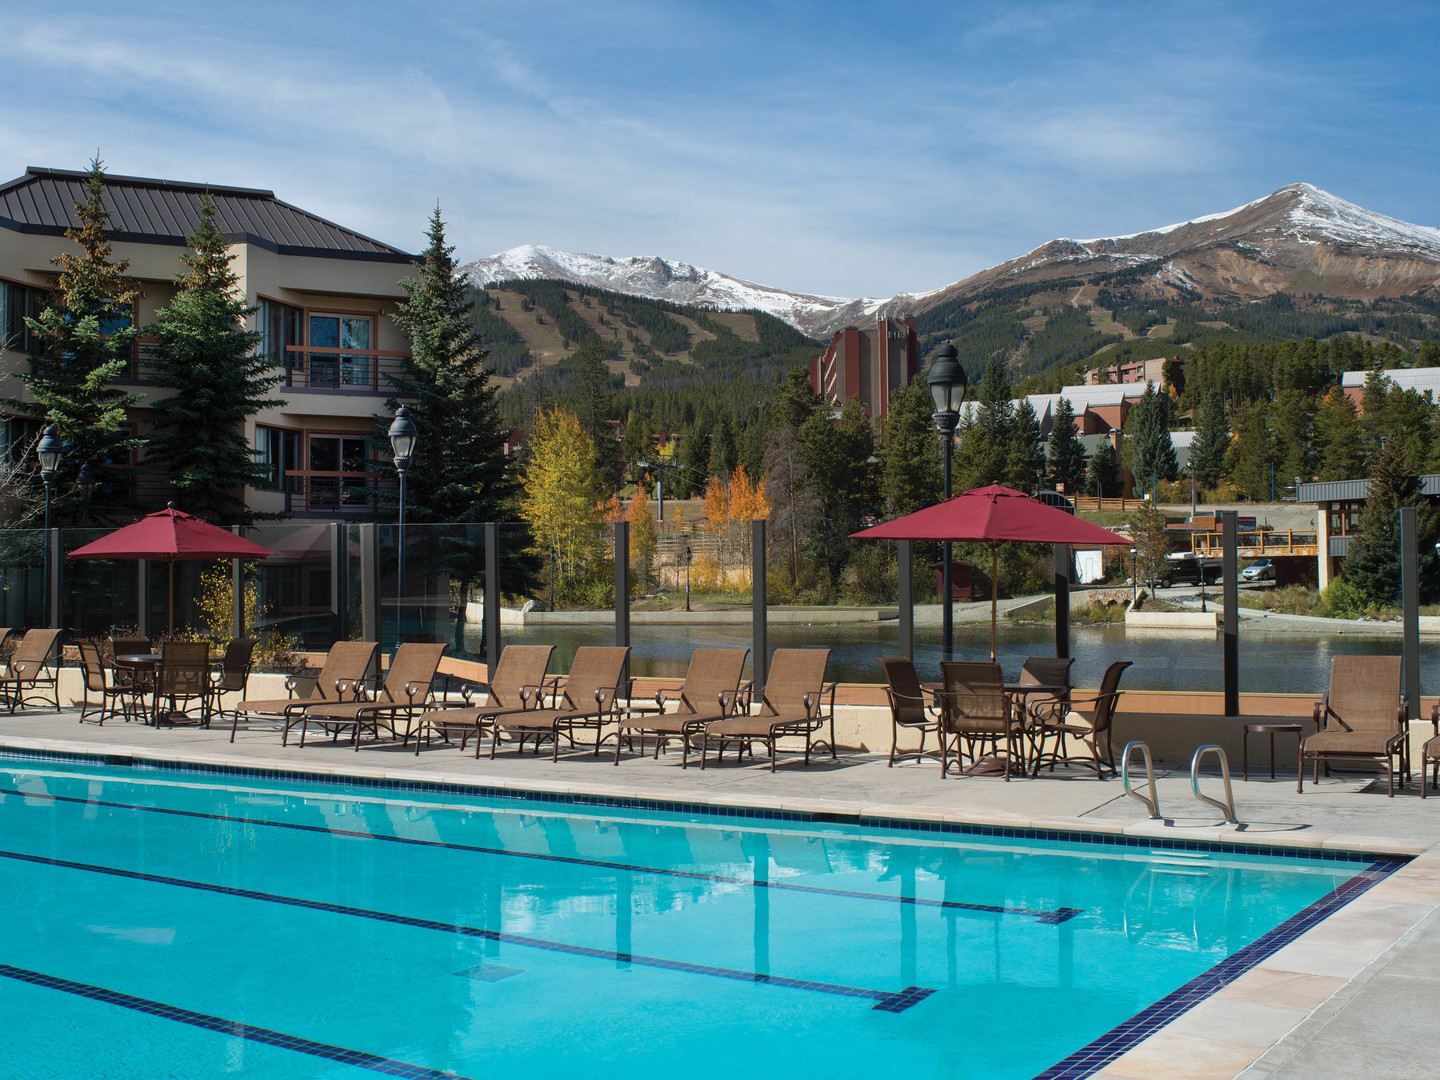 Marriott's Mountain Valley Lodge Main Pool. Marriott's Mountain Valley Lodge is located in Breckenridge, Colorado United States.